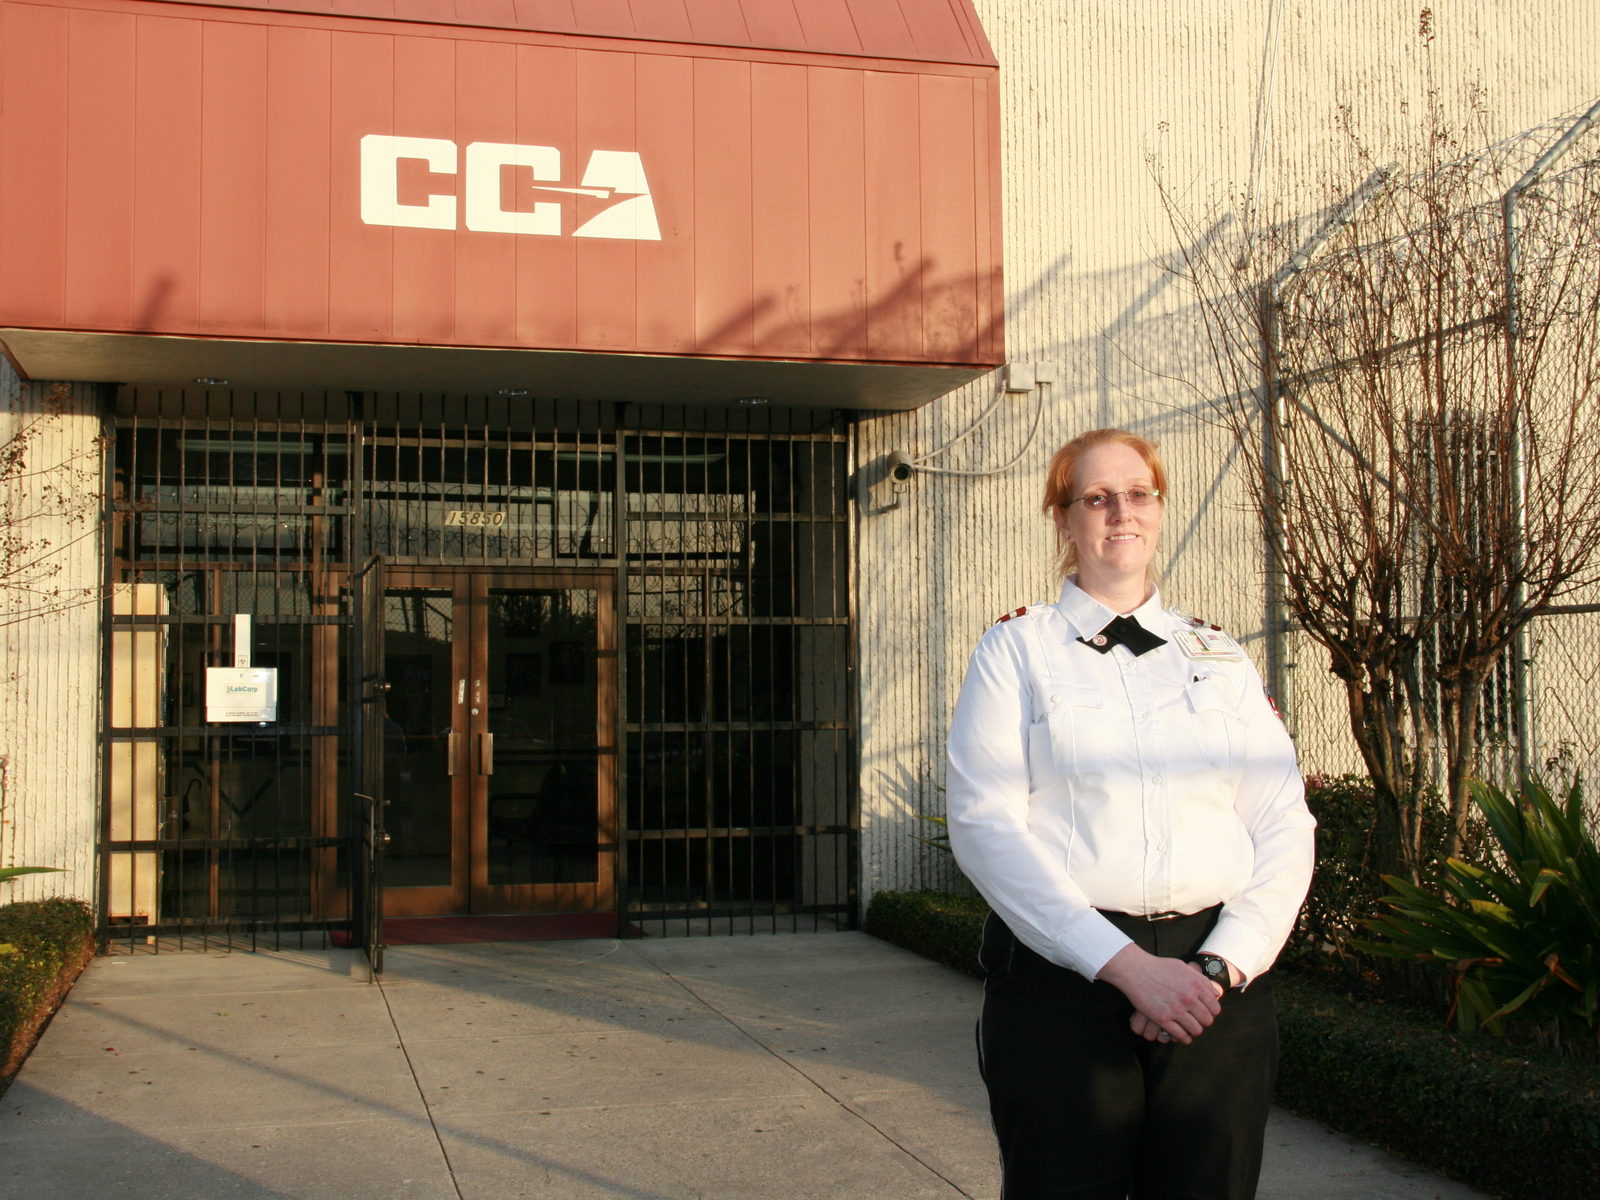 ccas robert lacy named �warden of the year� by north